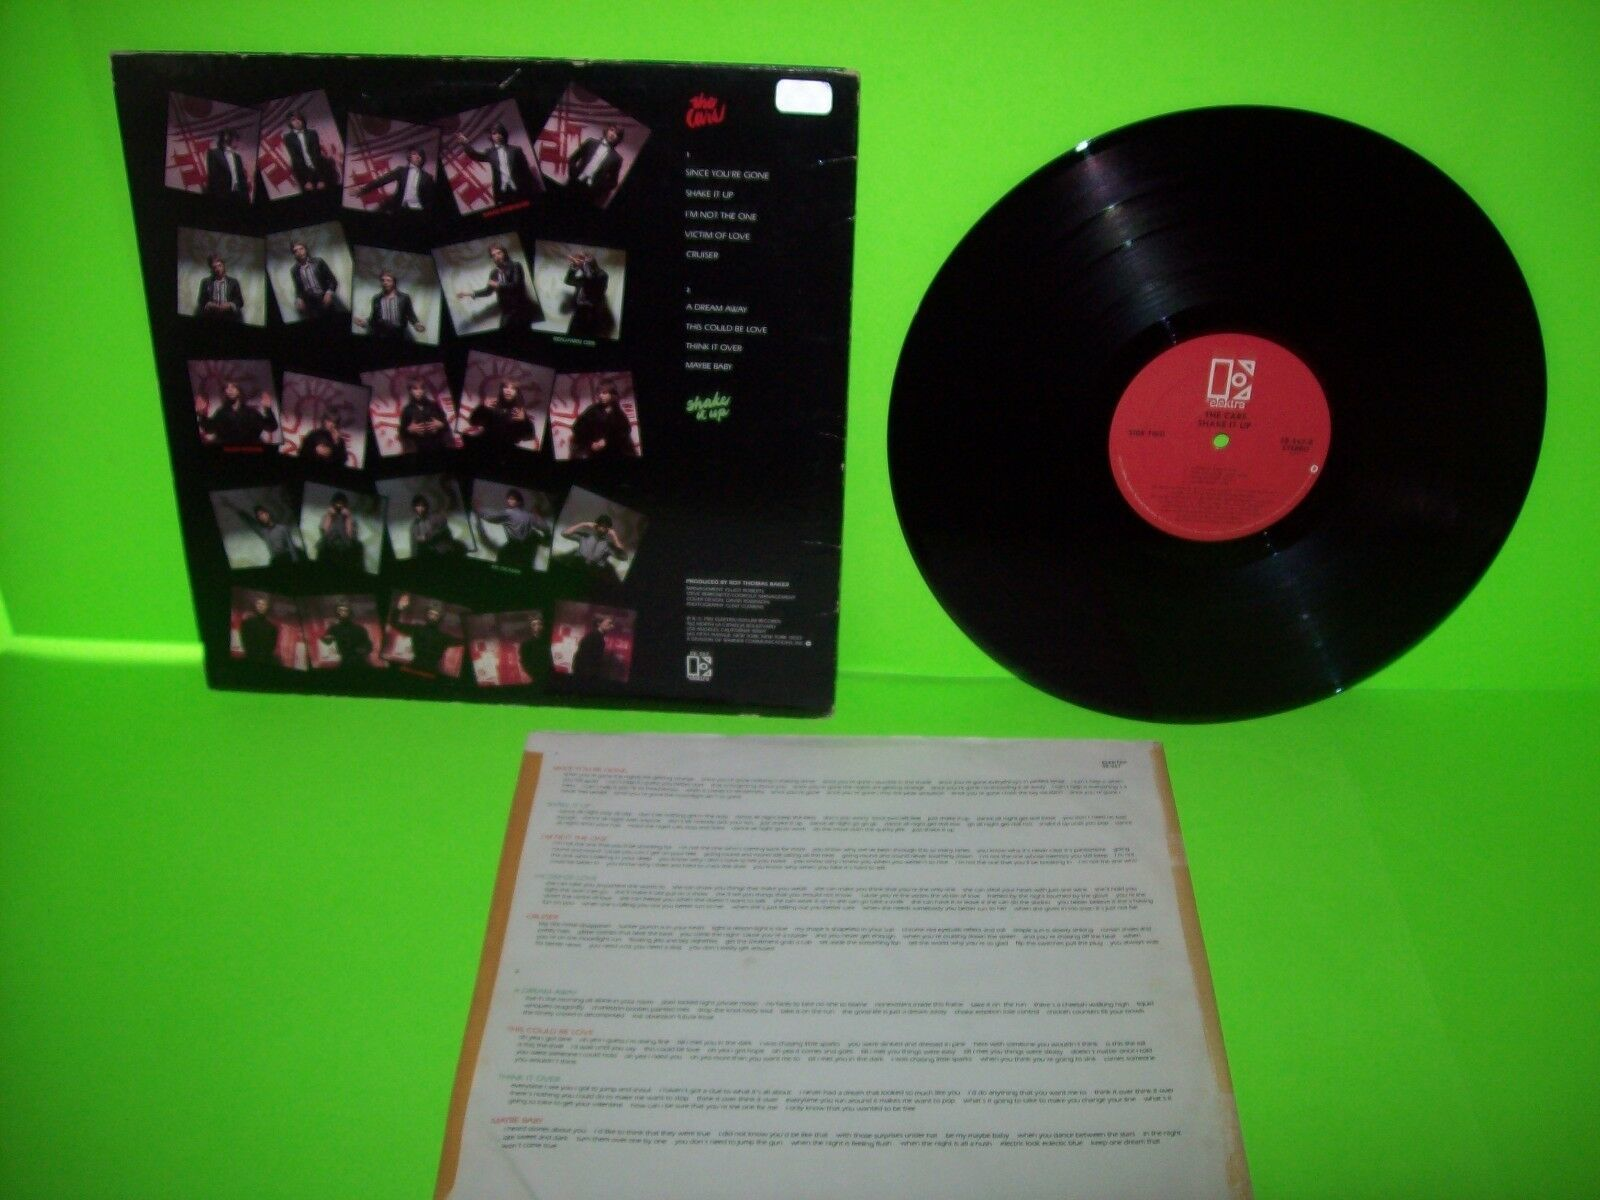 The Cars Shake It Up 1981 Vinyl LP Record Album Synth-Pop Pop Rock New Wave